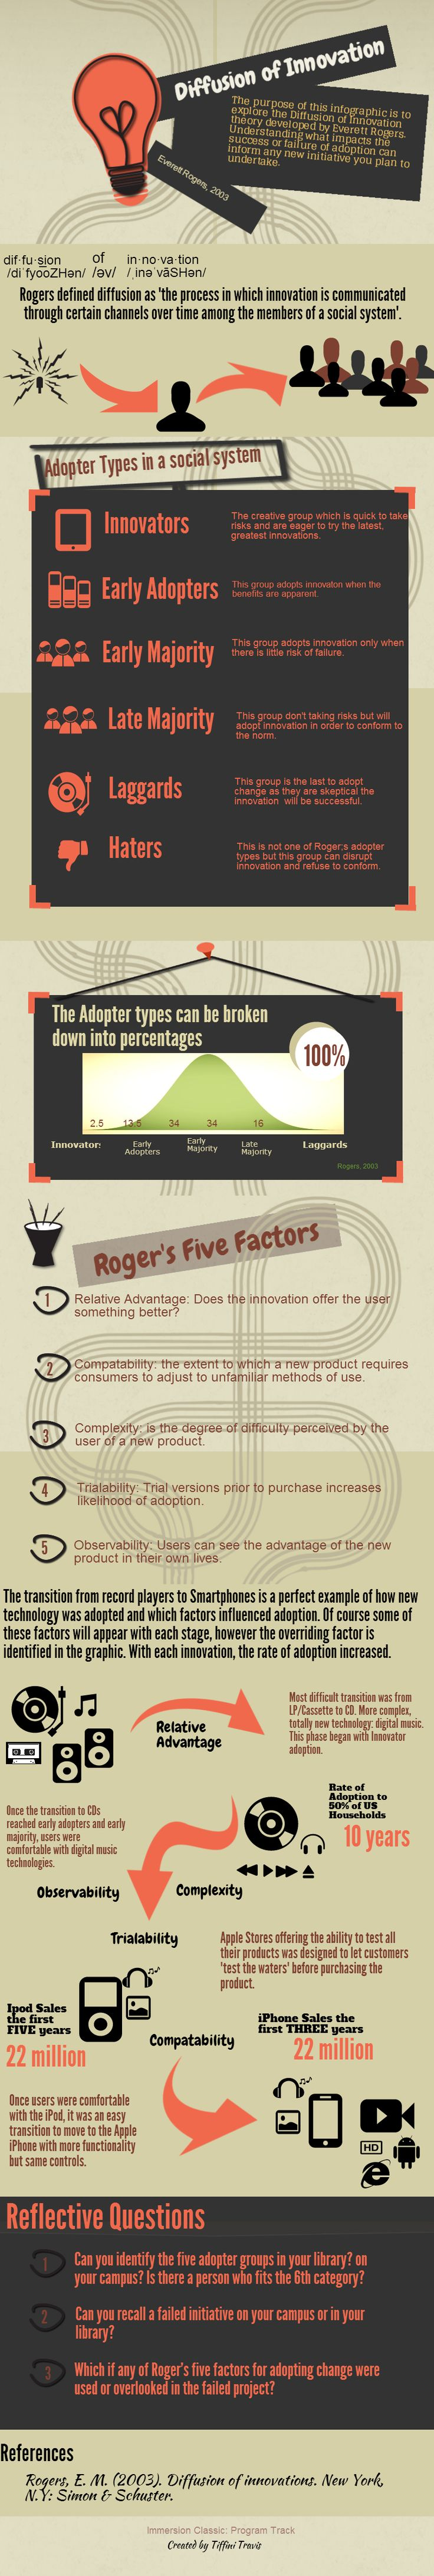 a brief over view of the main tenets of Rogers' Diffusion of Innovation including reasons for change. This infographic was created as brief introducti